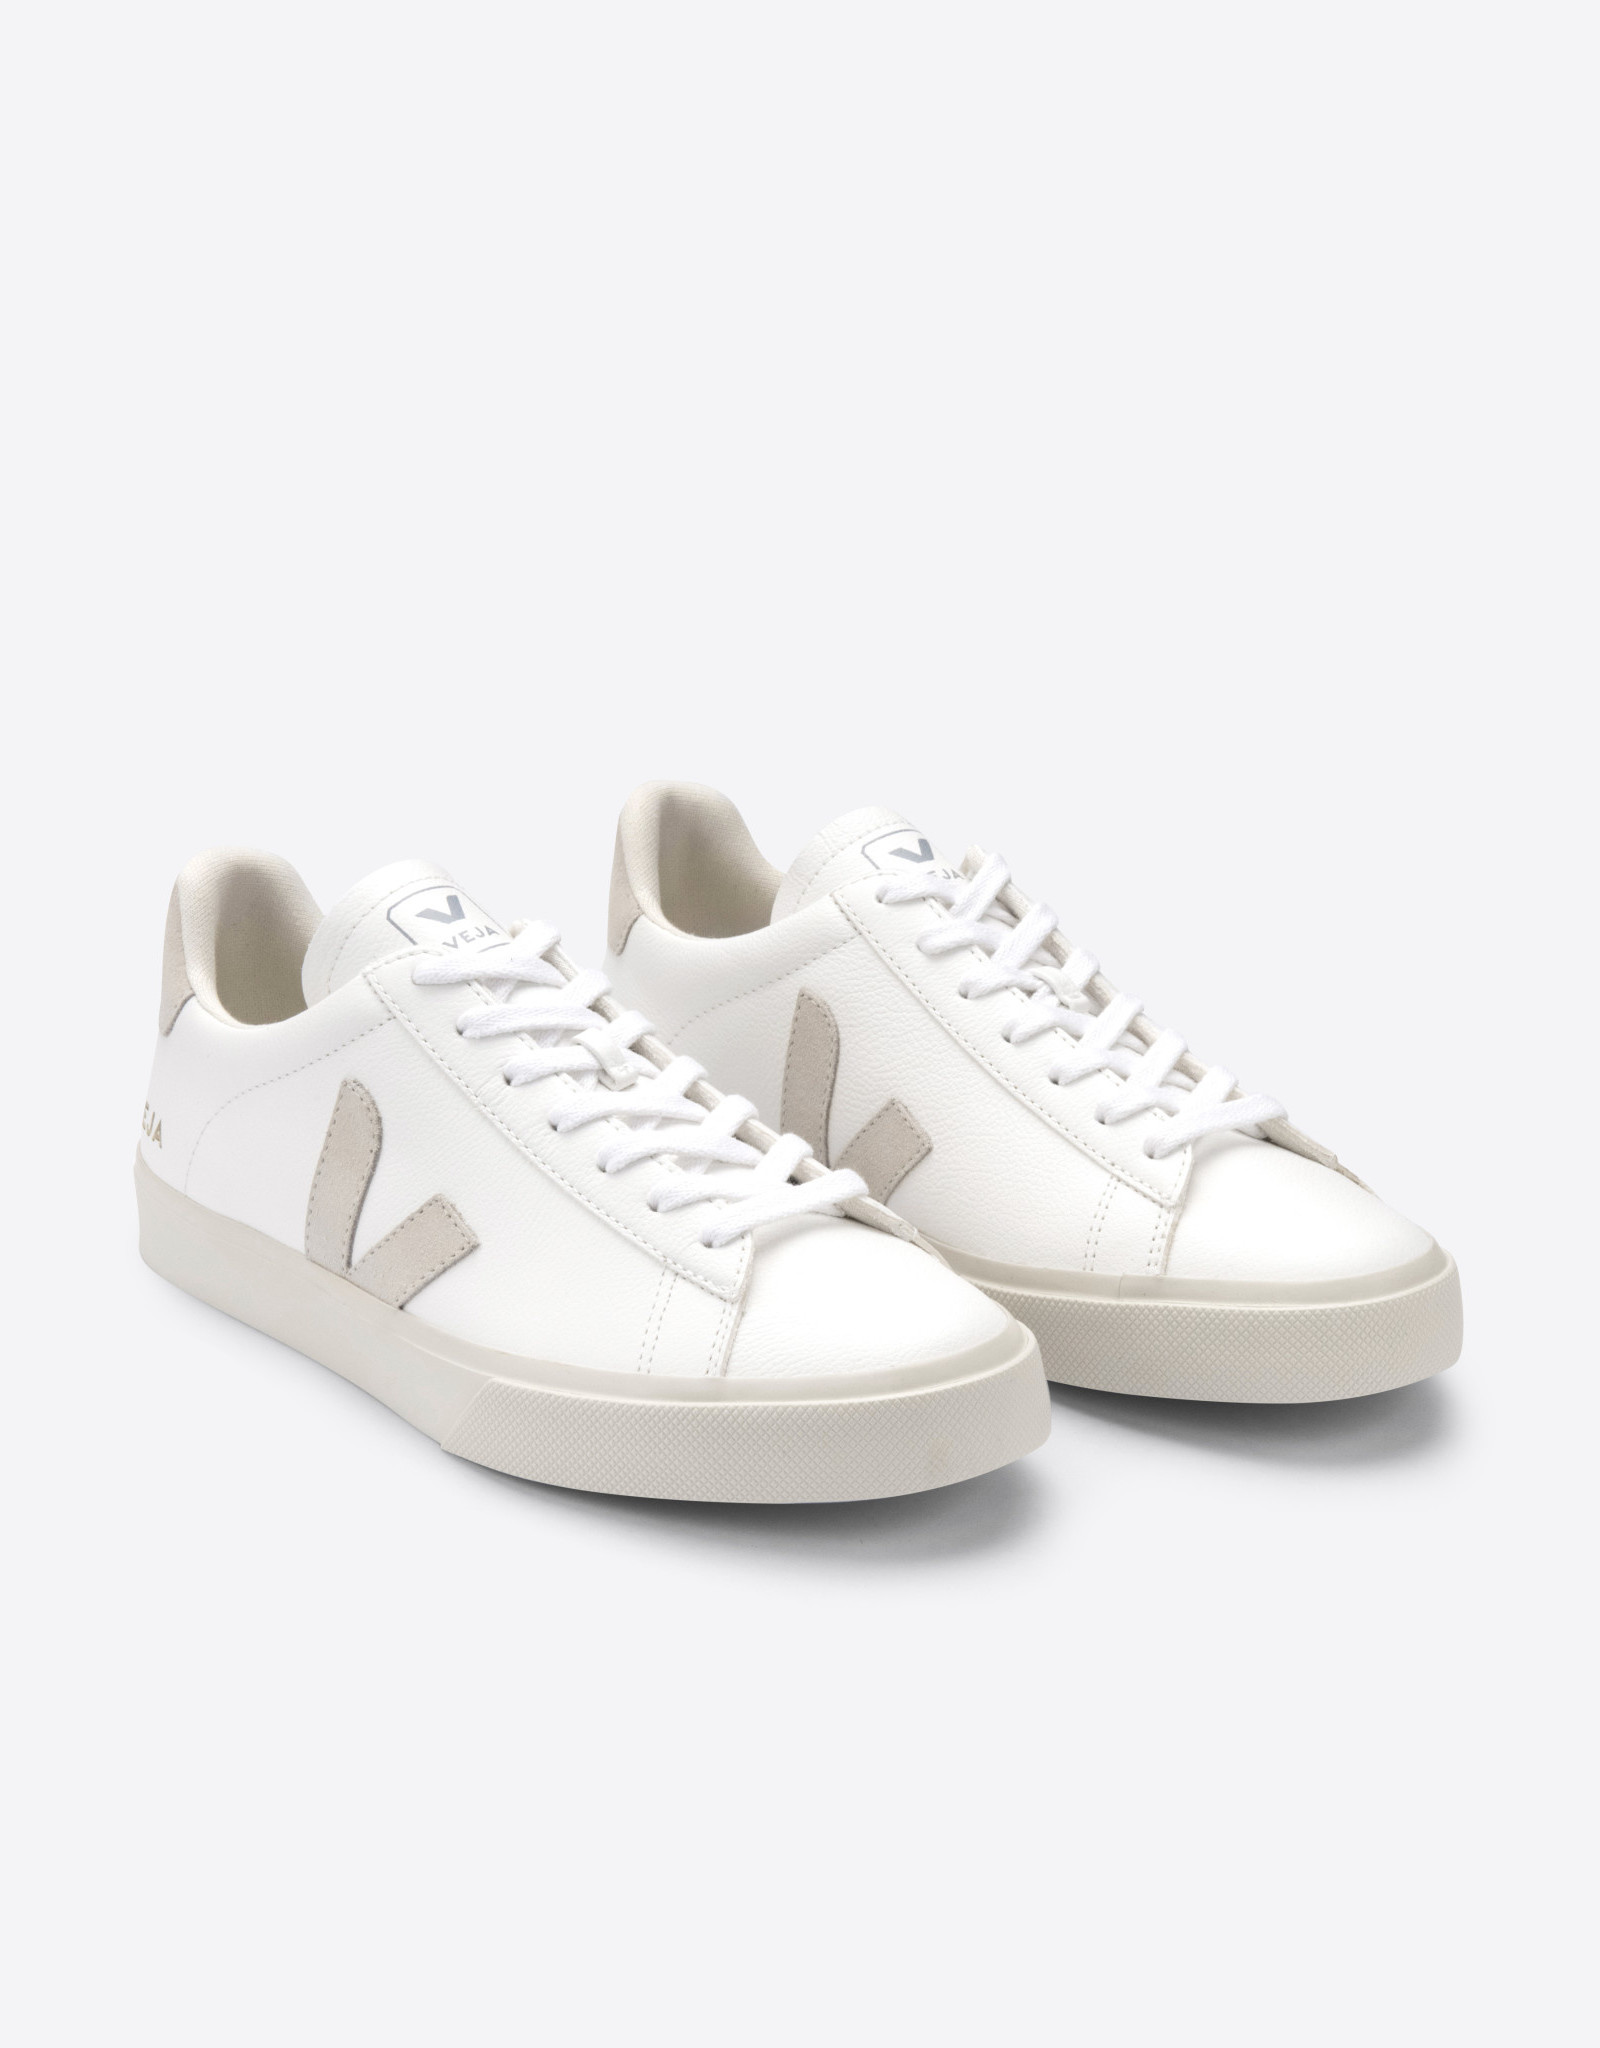 Veja CAMPO CHROMEFREE EXTRA-WHIITE_NATURAL-SUEDE MEN